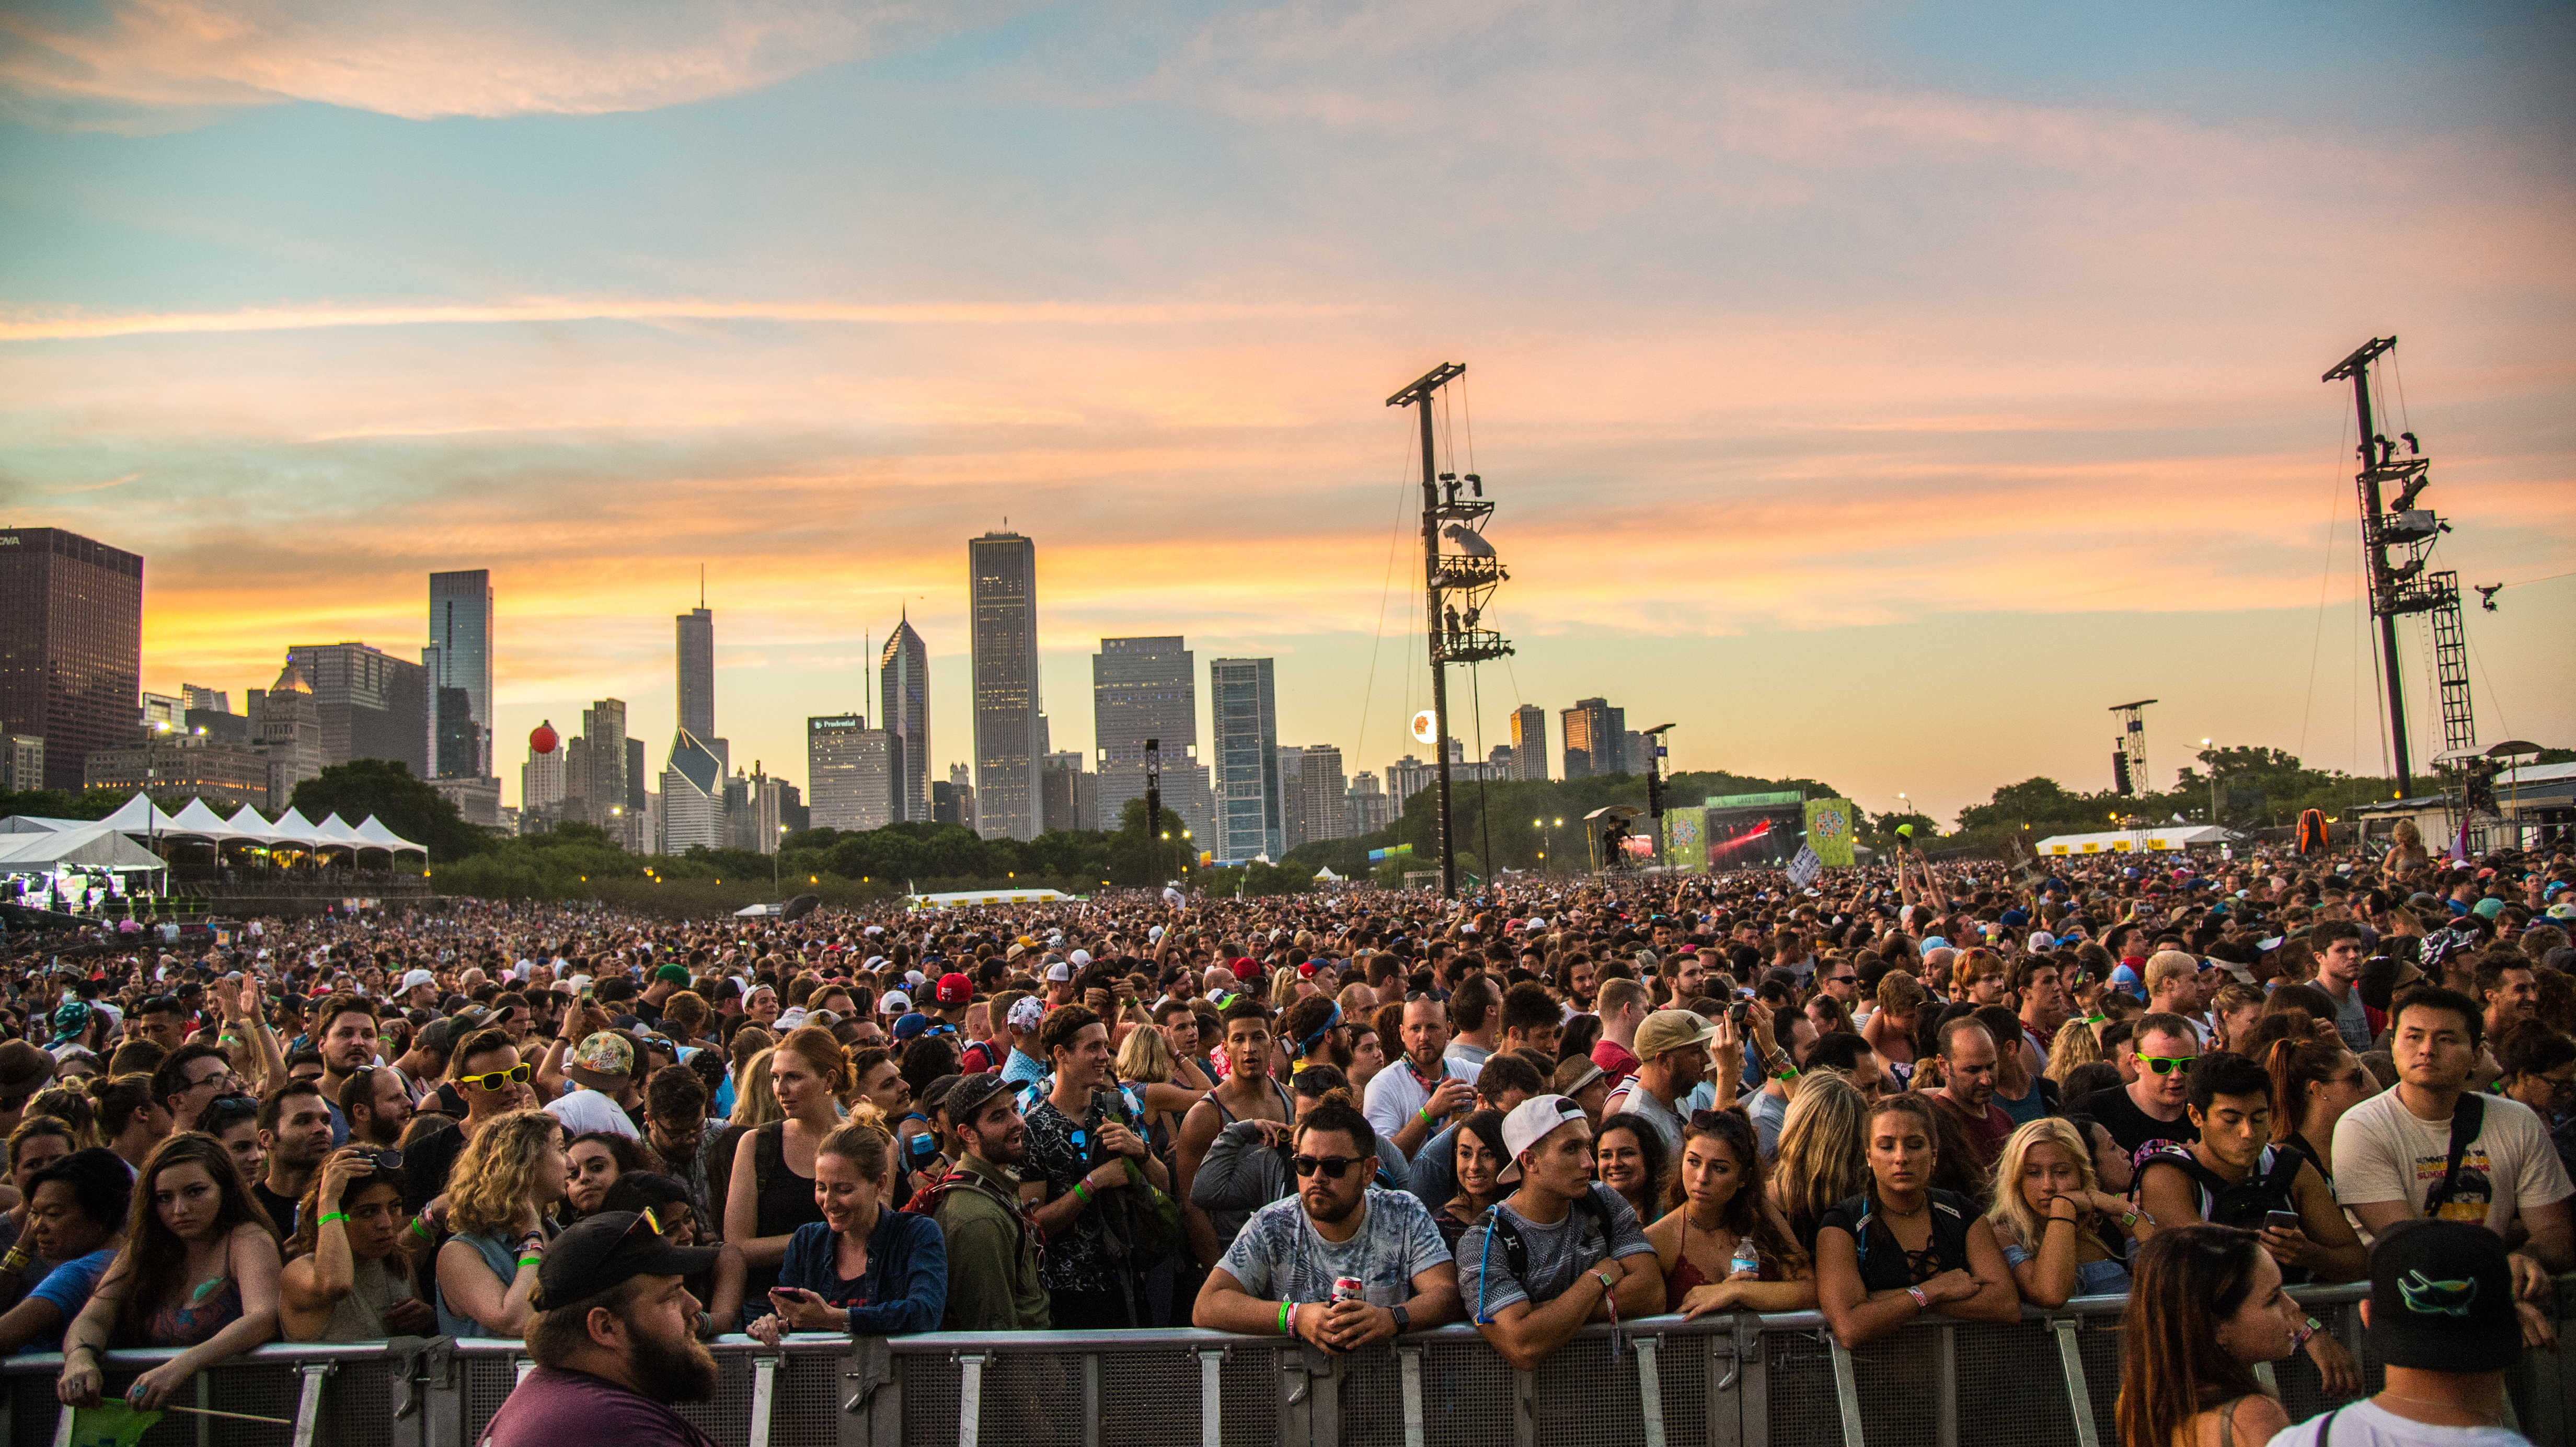 A Lollapalooza crowd looks at a massive stage behind the photographer. Sunset sky and Chicago skyscrapers in the back.